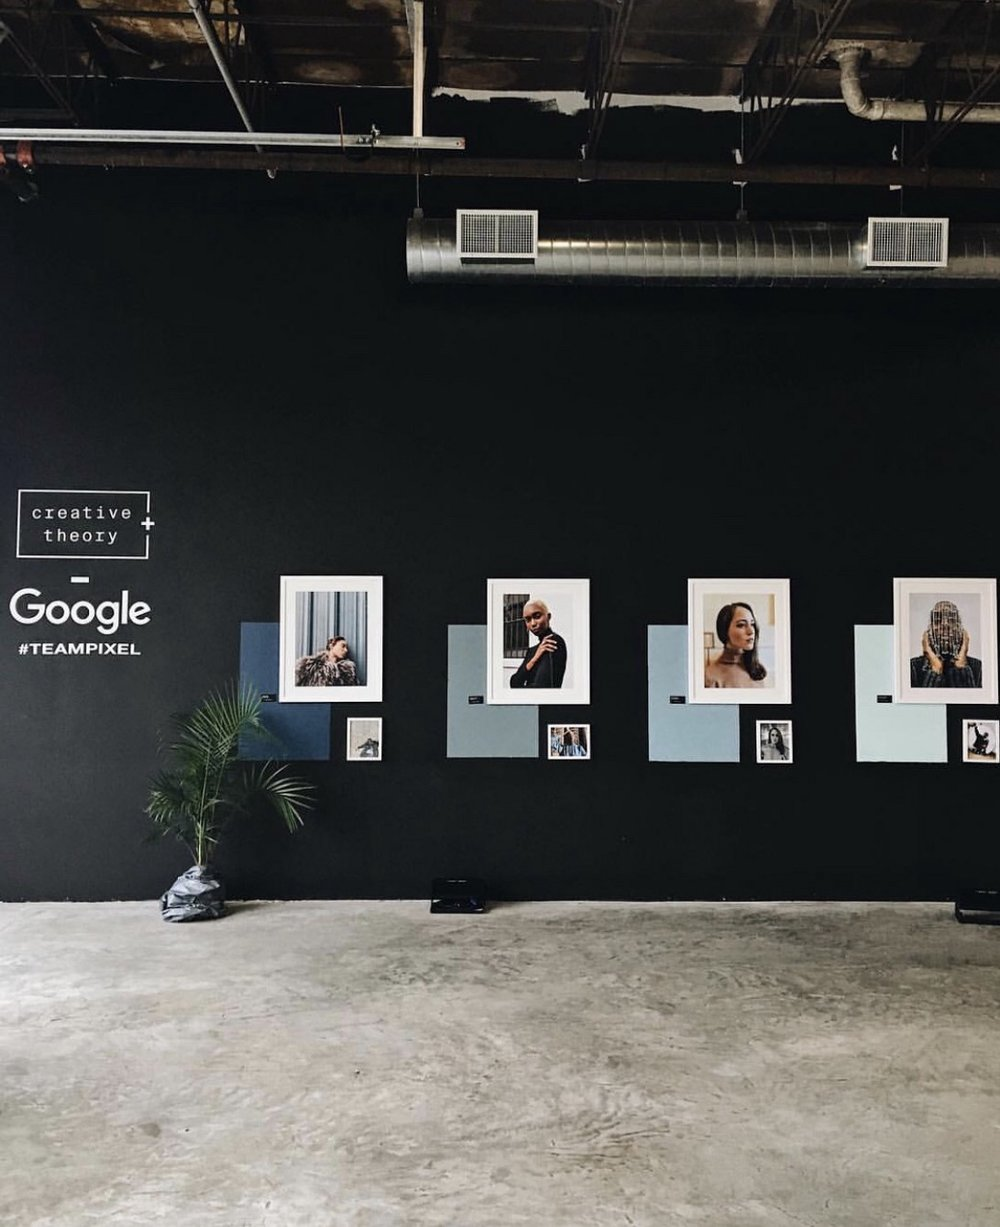 Creative Theory- Humanity, The Exhibit, in collaboration with Google